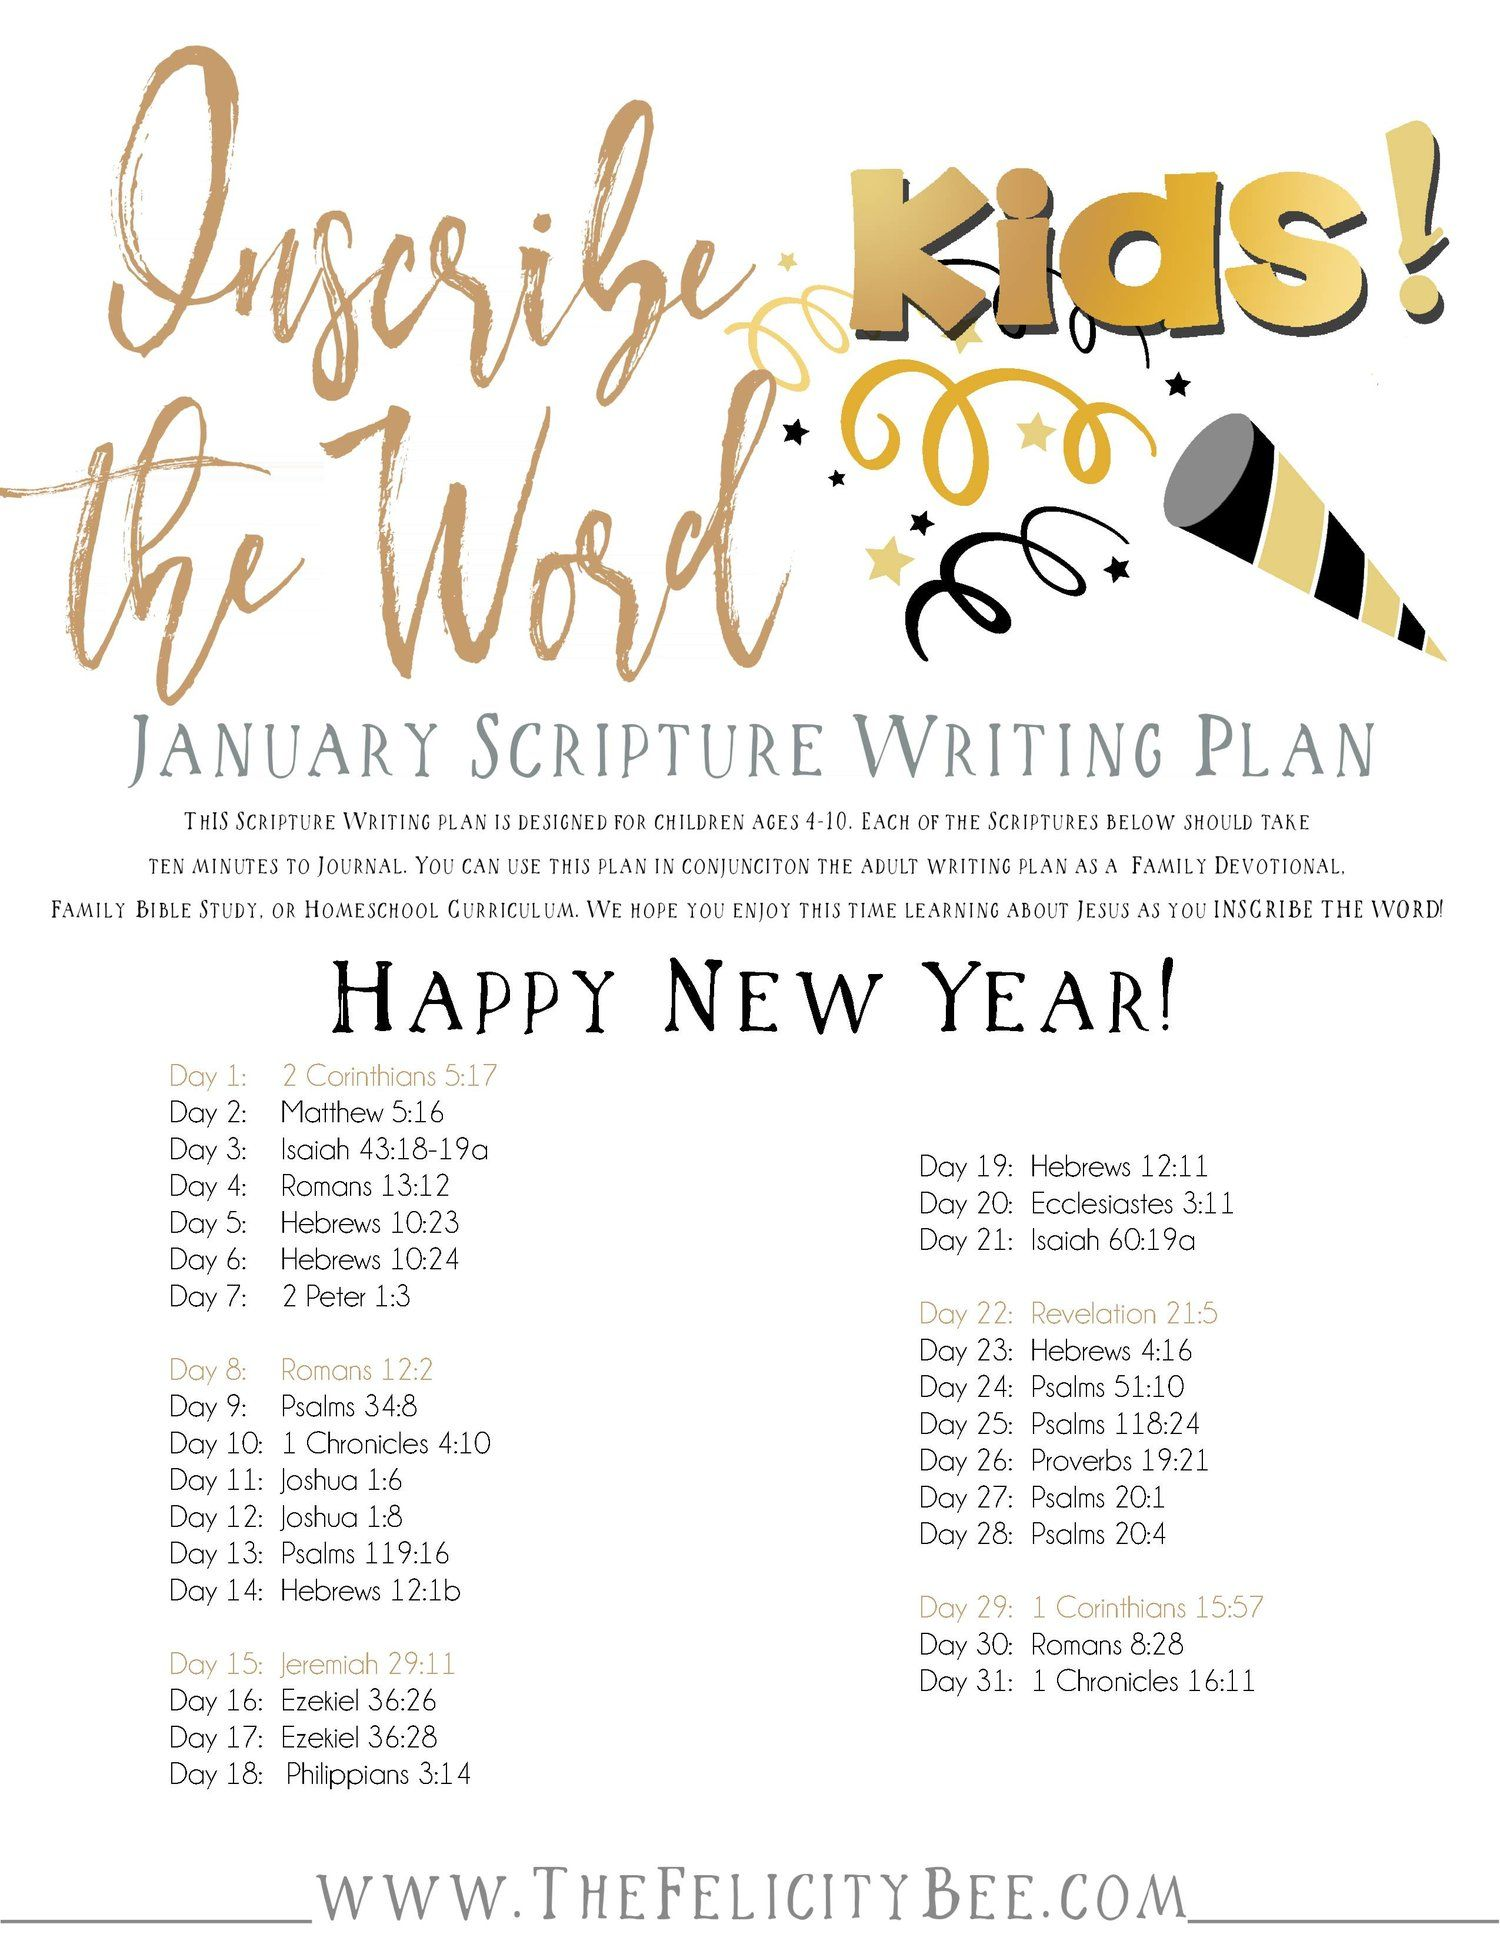 Dec 27 Inscribe the Word KIDS! . . . January Scripture